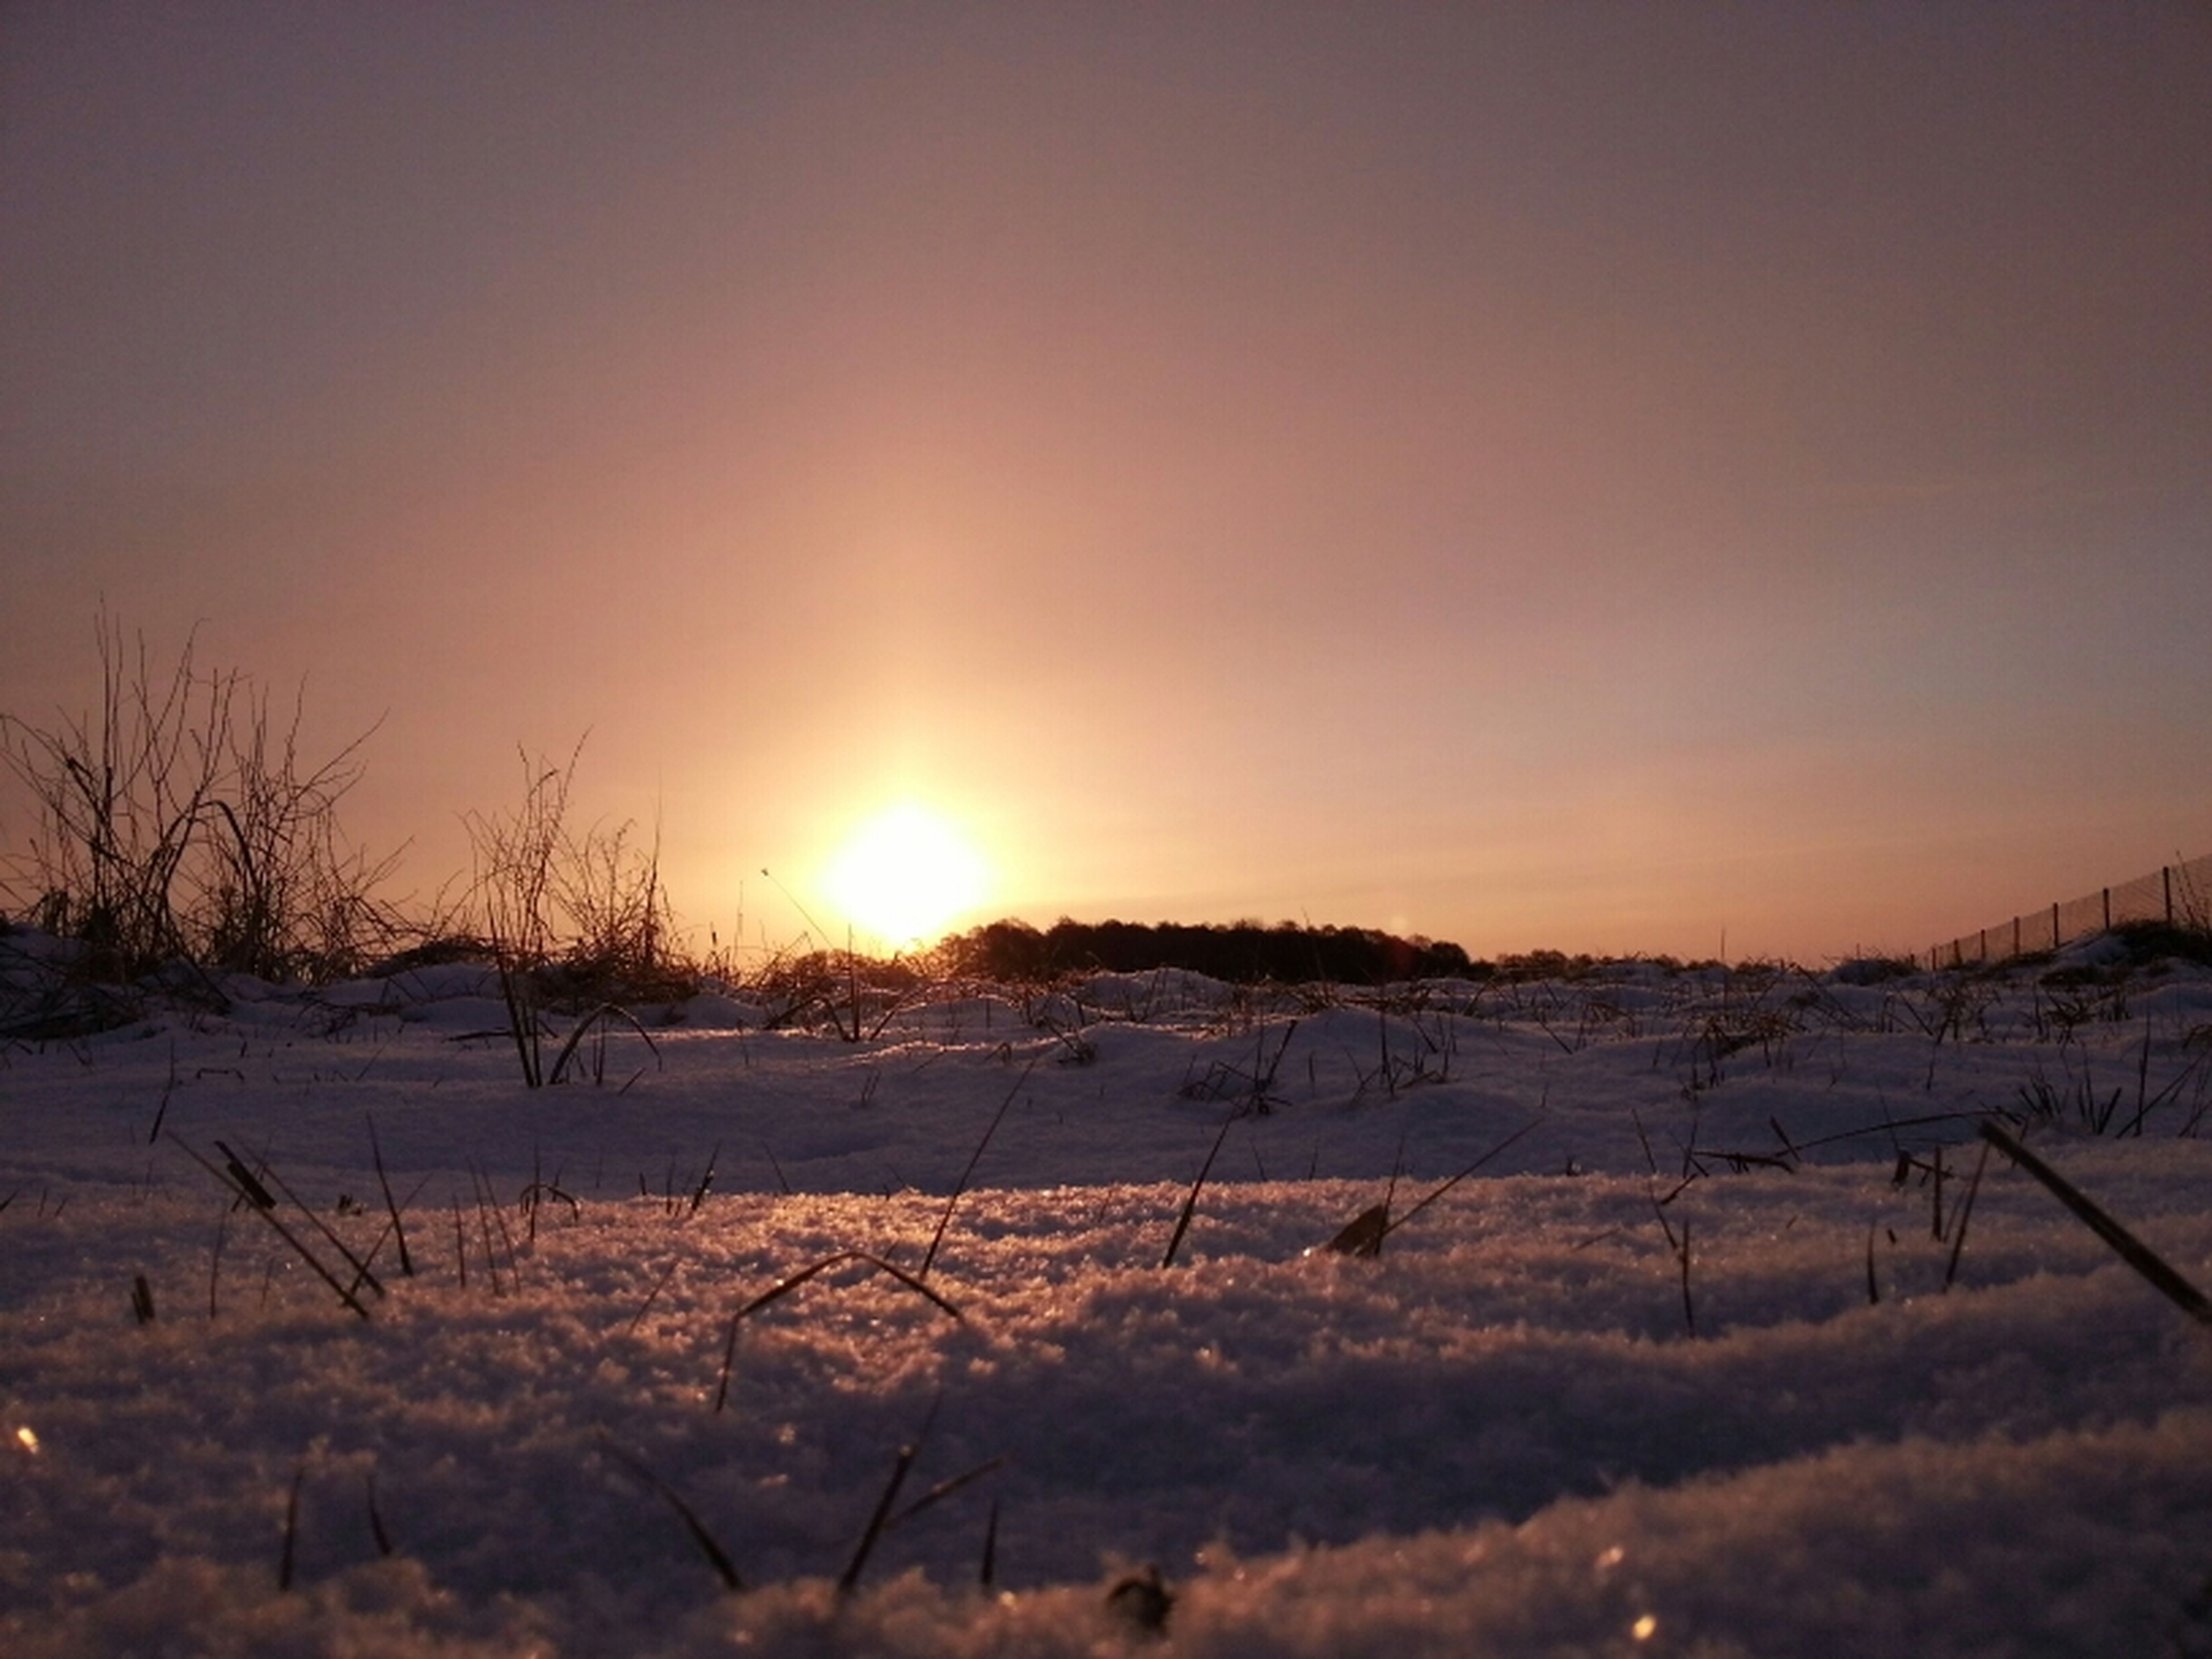 winter, snow, cold temperature, sunset, sun, season, landscape, tranquil scene, tranquility, field, weather, covering, scenics, beauty in nature, orange color, nature, clear sky, frozen, sunlight, sky